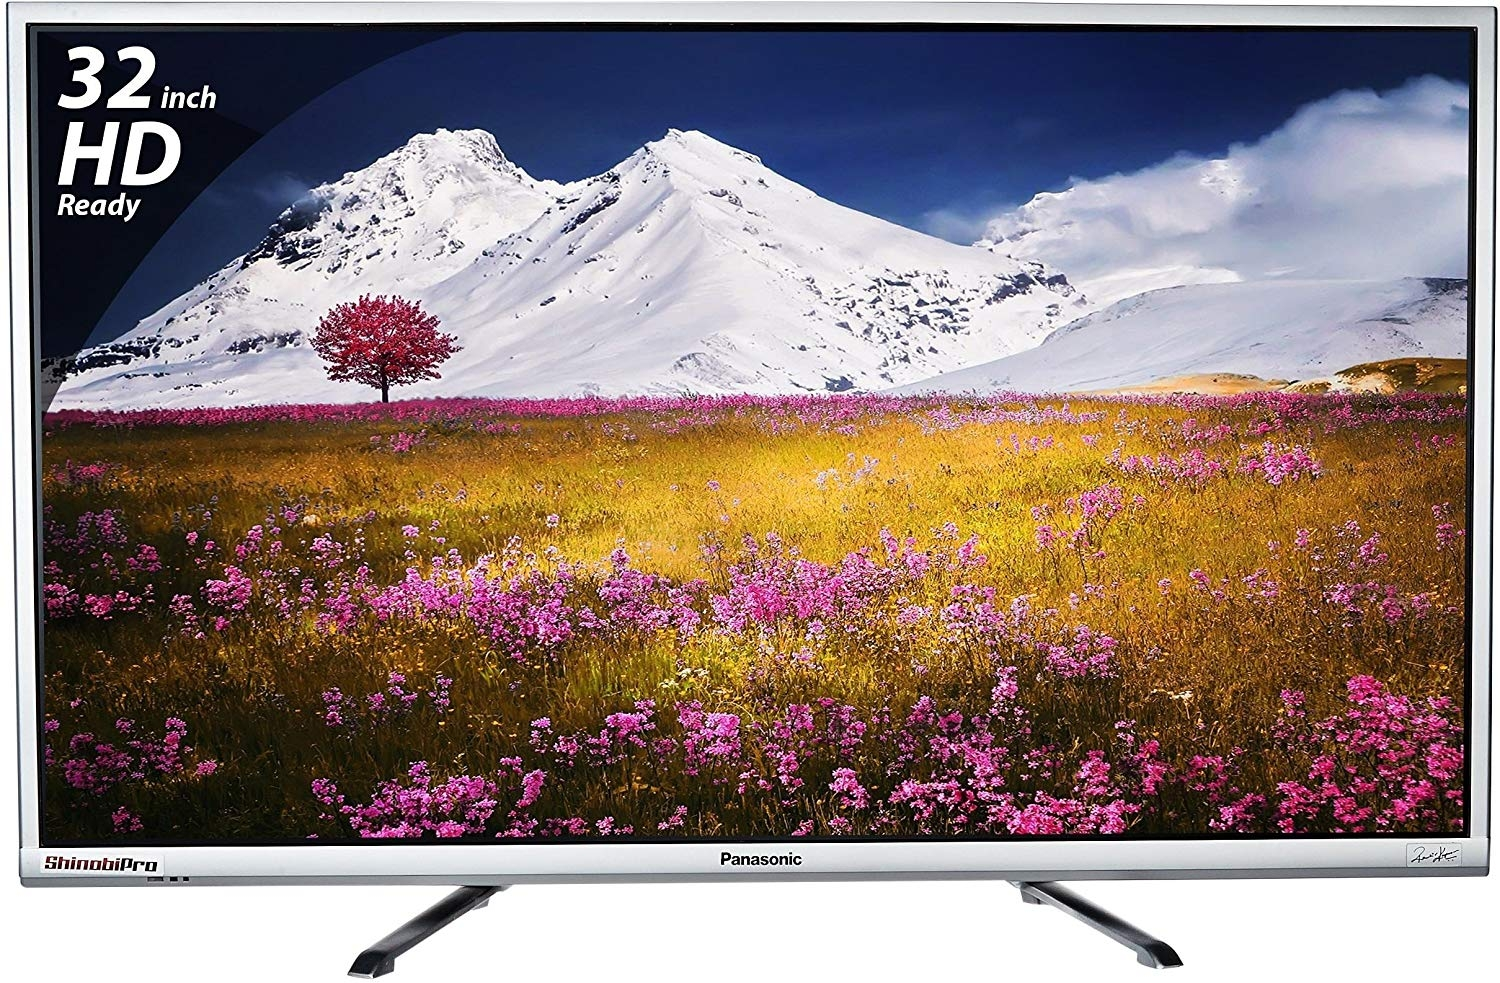 Panasonic 80 cm (32 inches) Viera Shinobi, Super Bright TH-32E460D HD Ready LED TV (Silver)